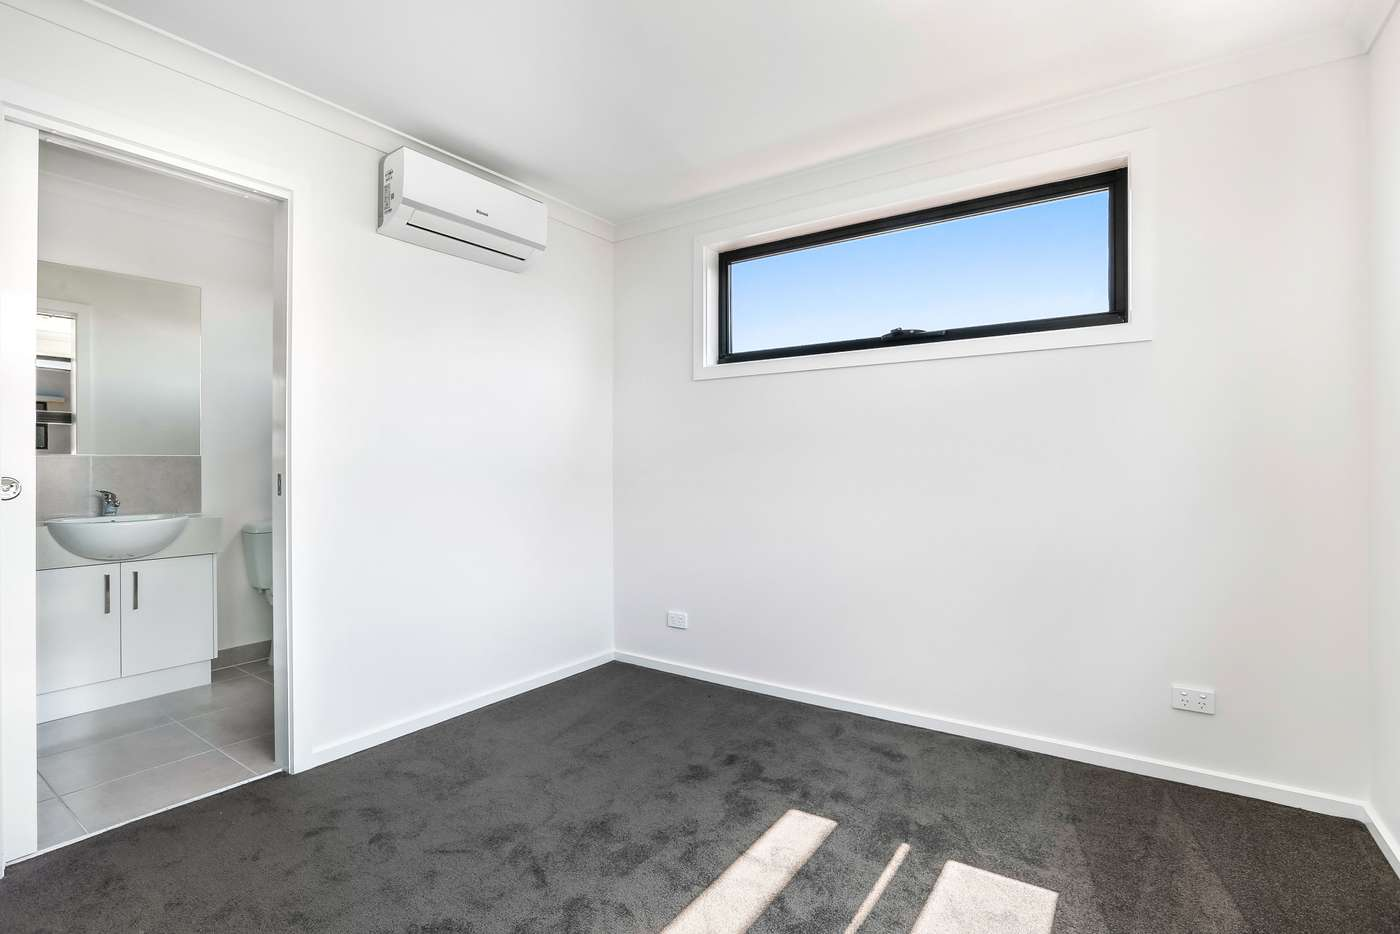 Sixth view of Homely townhouse listing, 18/85 Chapman Avenue, Glenroy VIC 3046